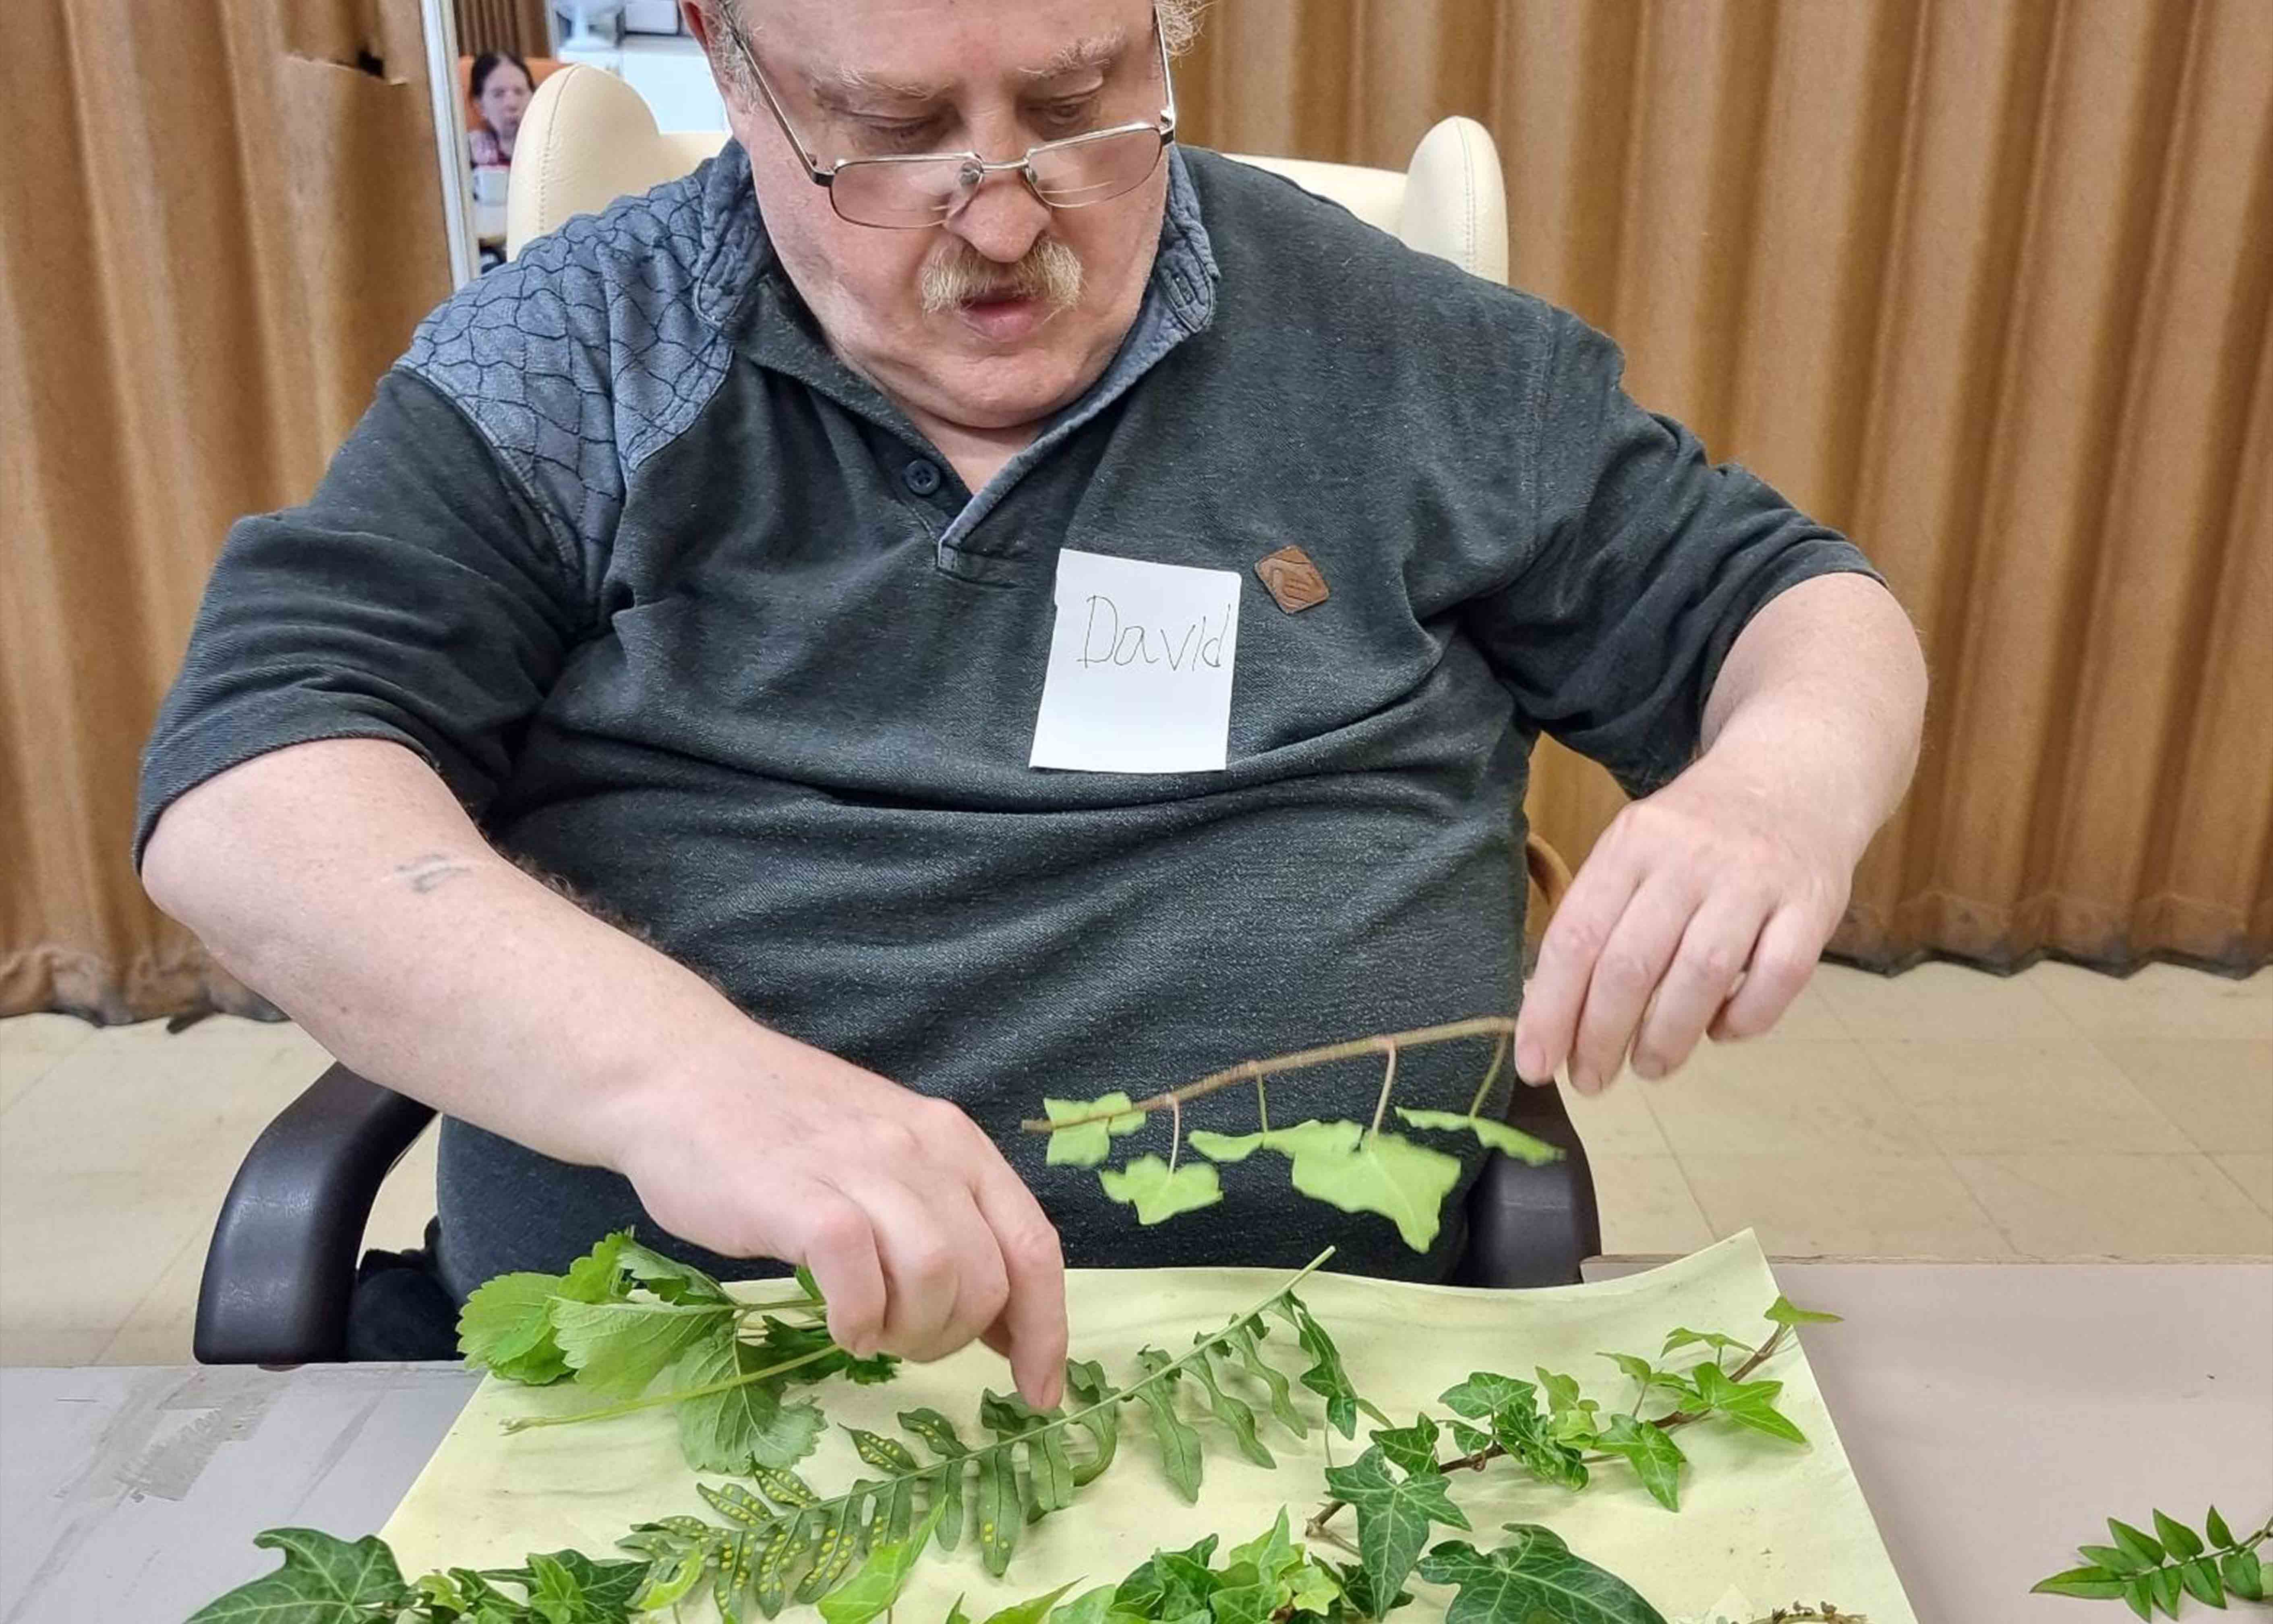 Man making art with leaves